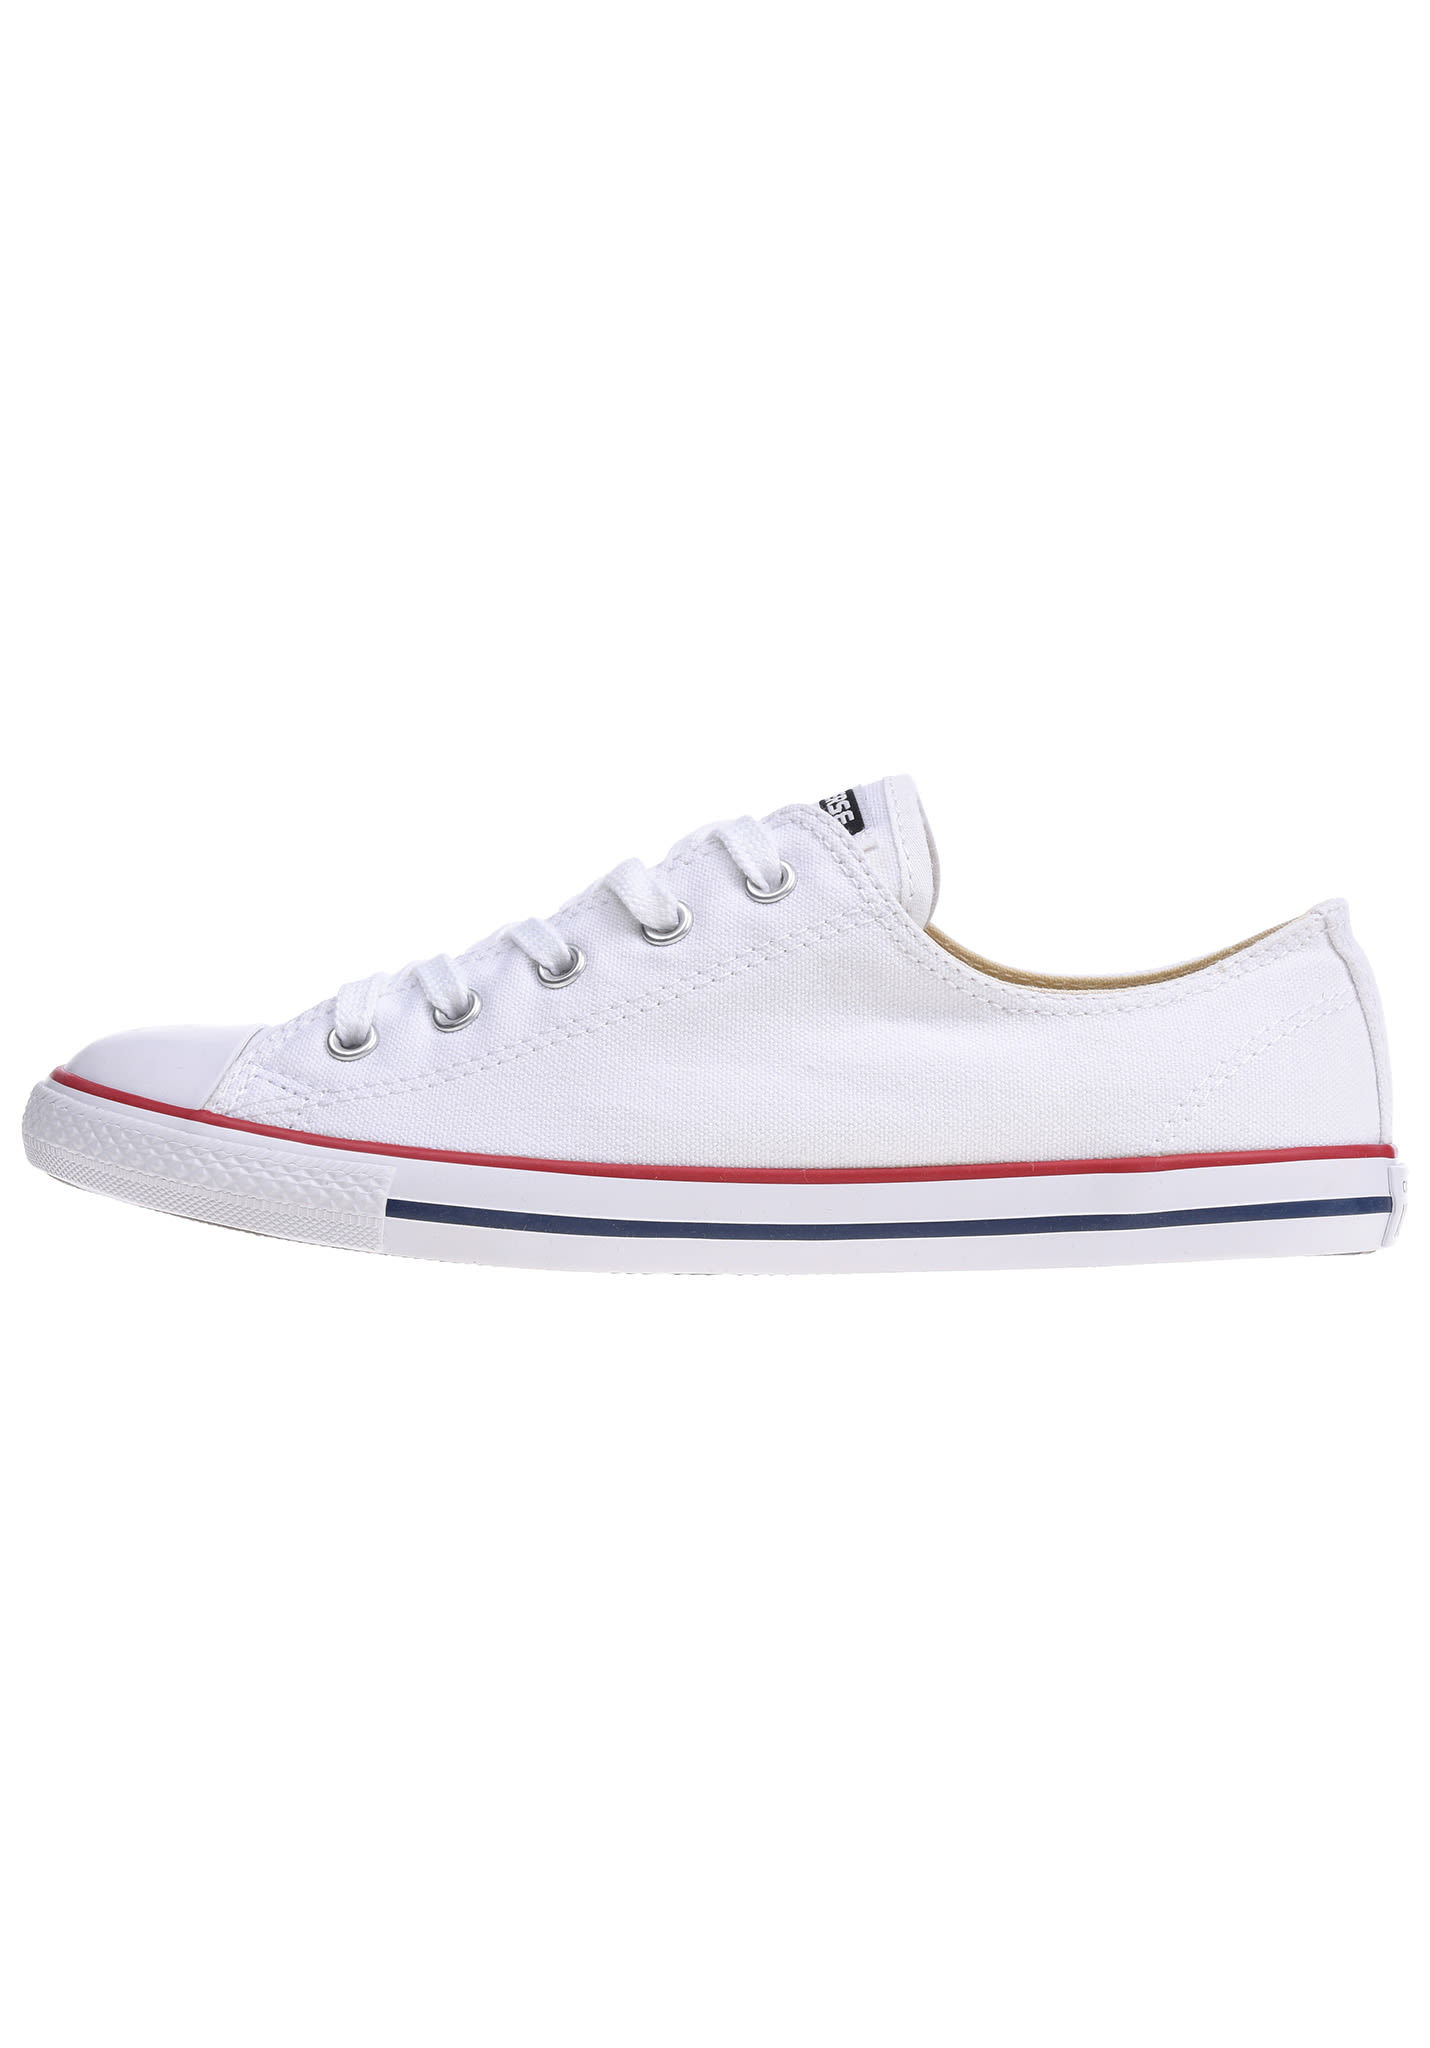 Converse Chuck Taylor All Star Ox Dainty - Zapatillas, color Azul, color 37.5